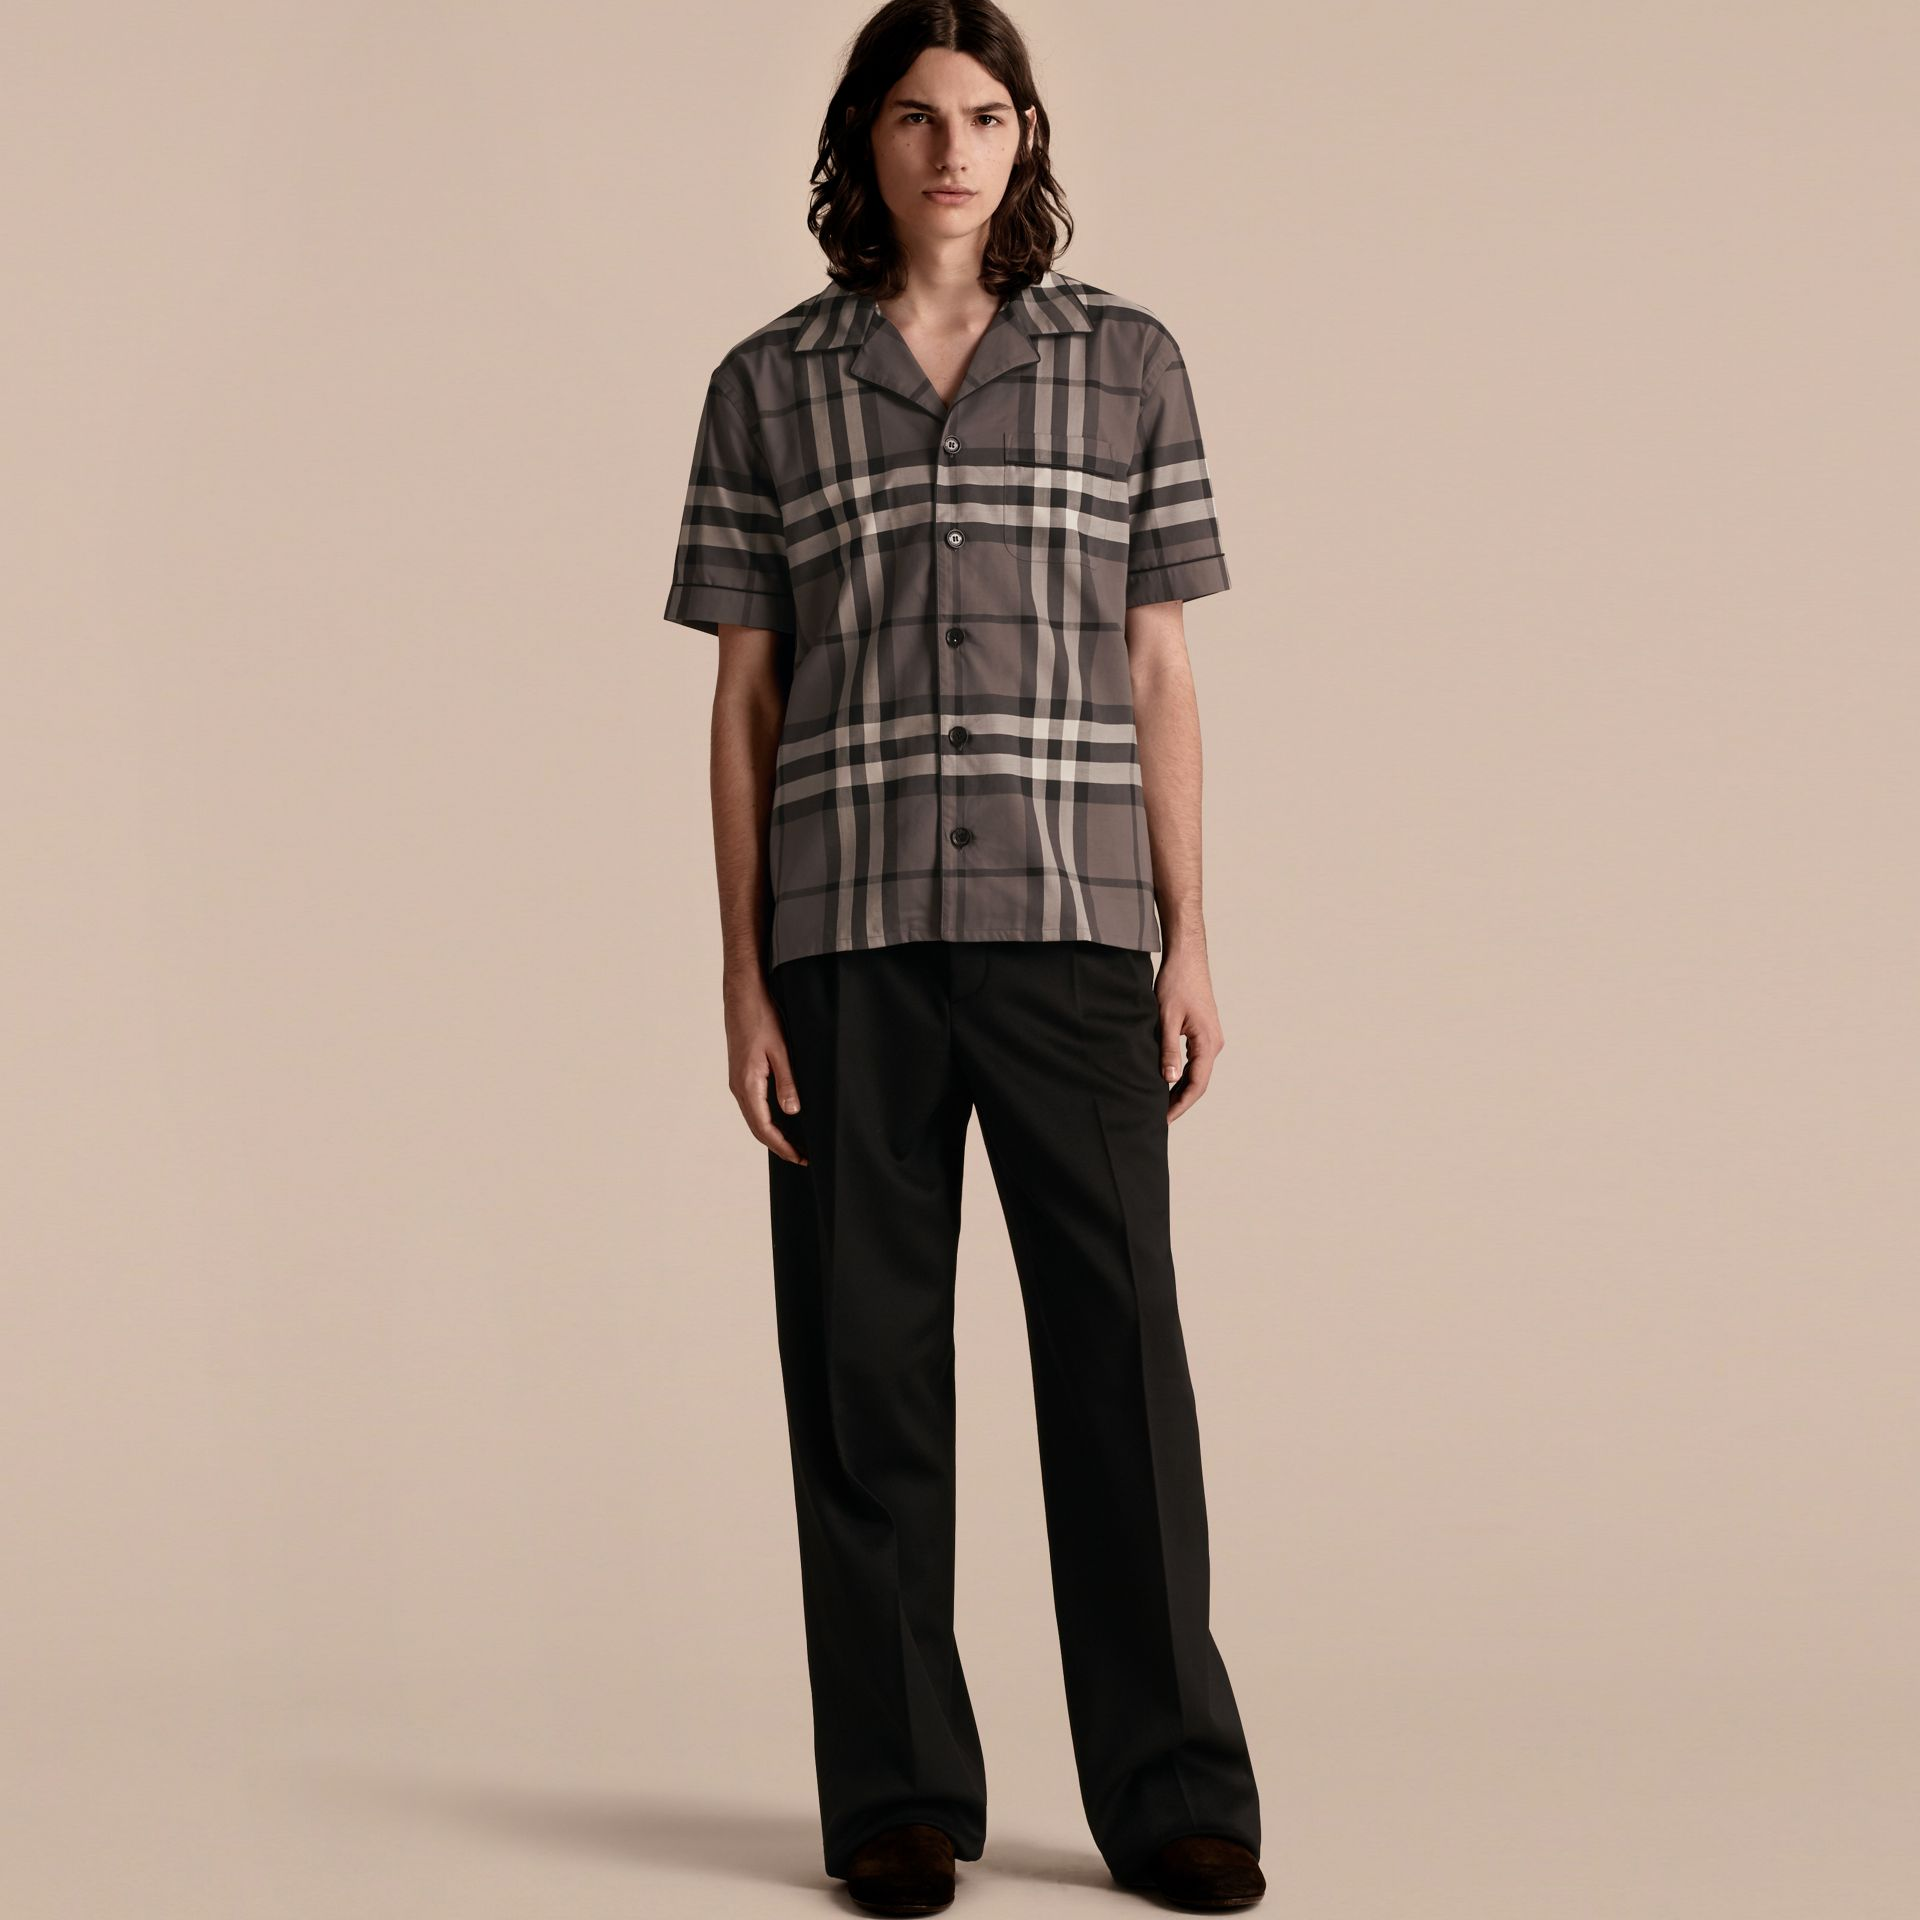 Charcoal Short-sleeved Check Cotton Pyjama-style Shirt Charcoal - gallery image 1